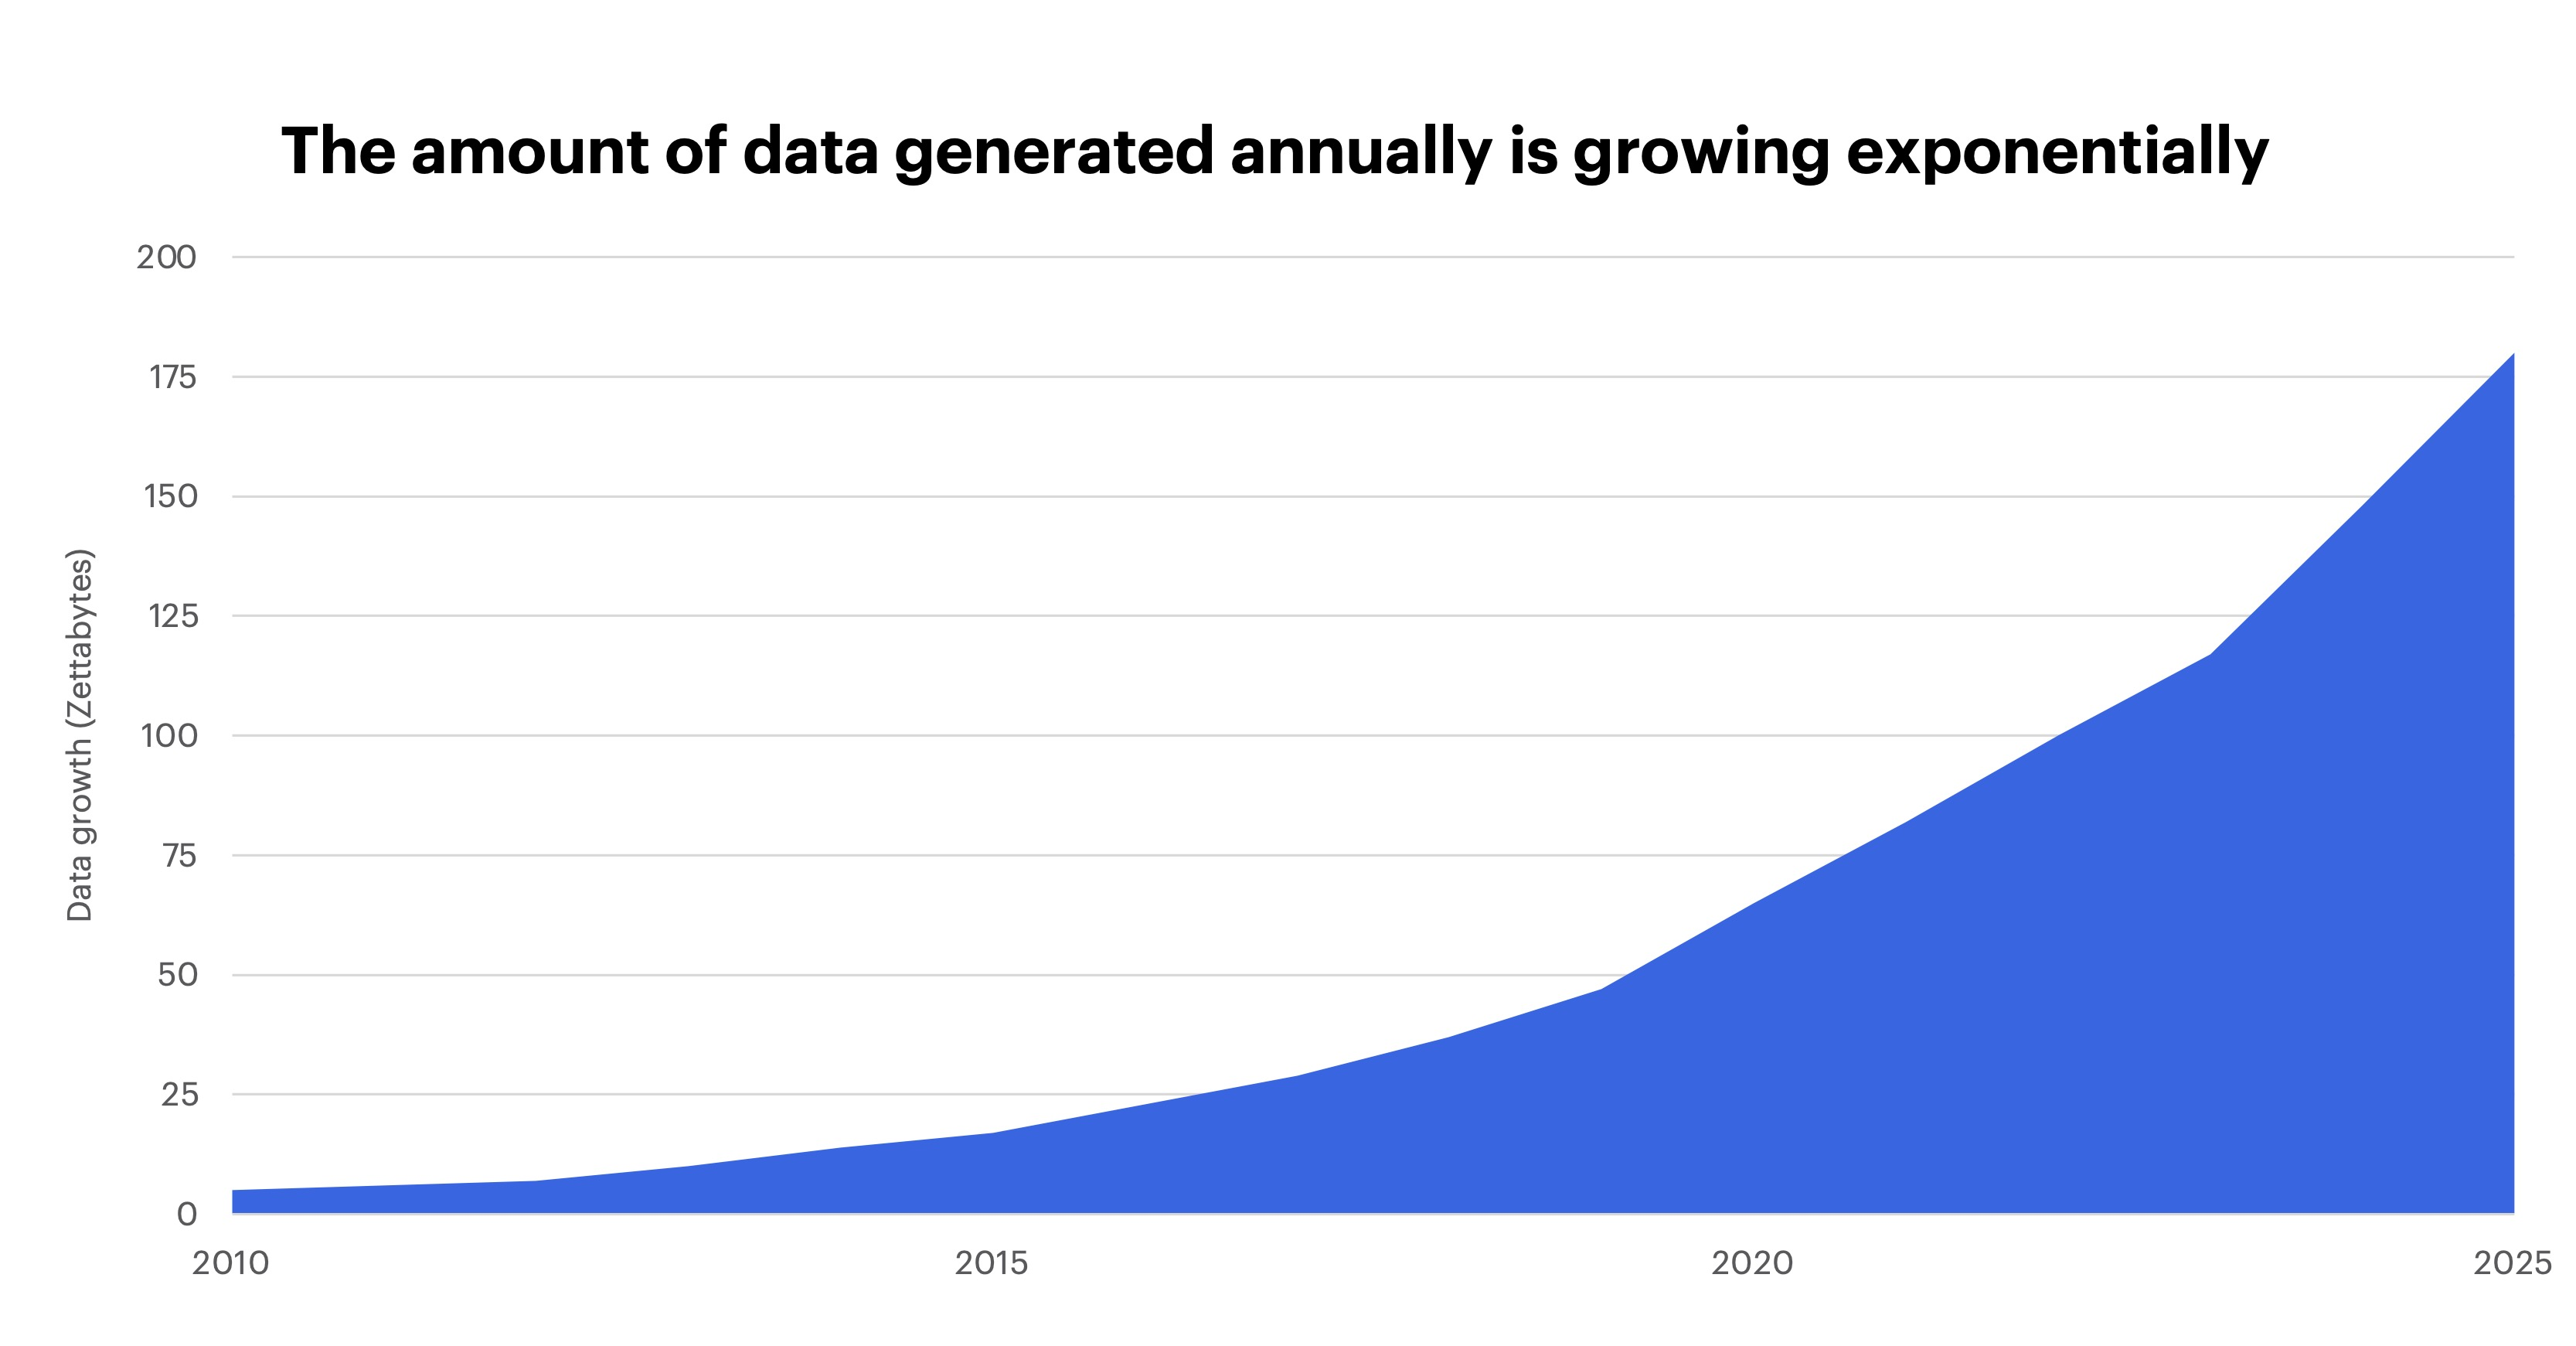 Chart - The amount of data generated annually is growing exponentially